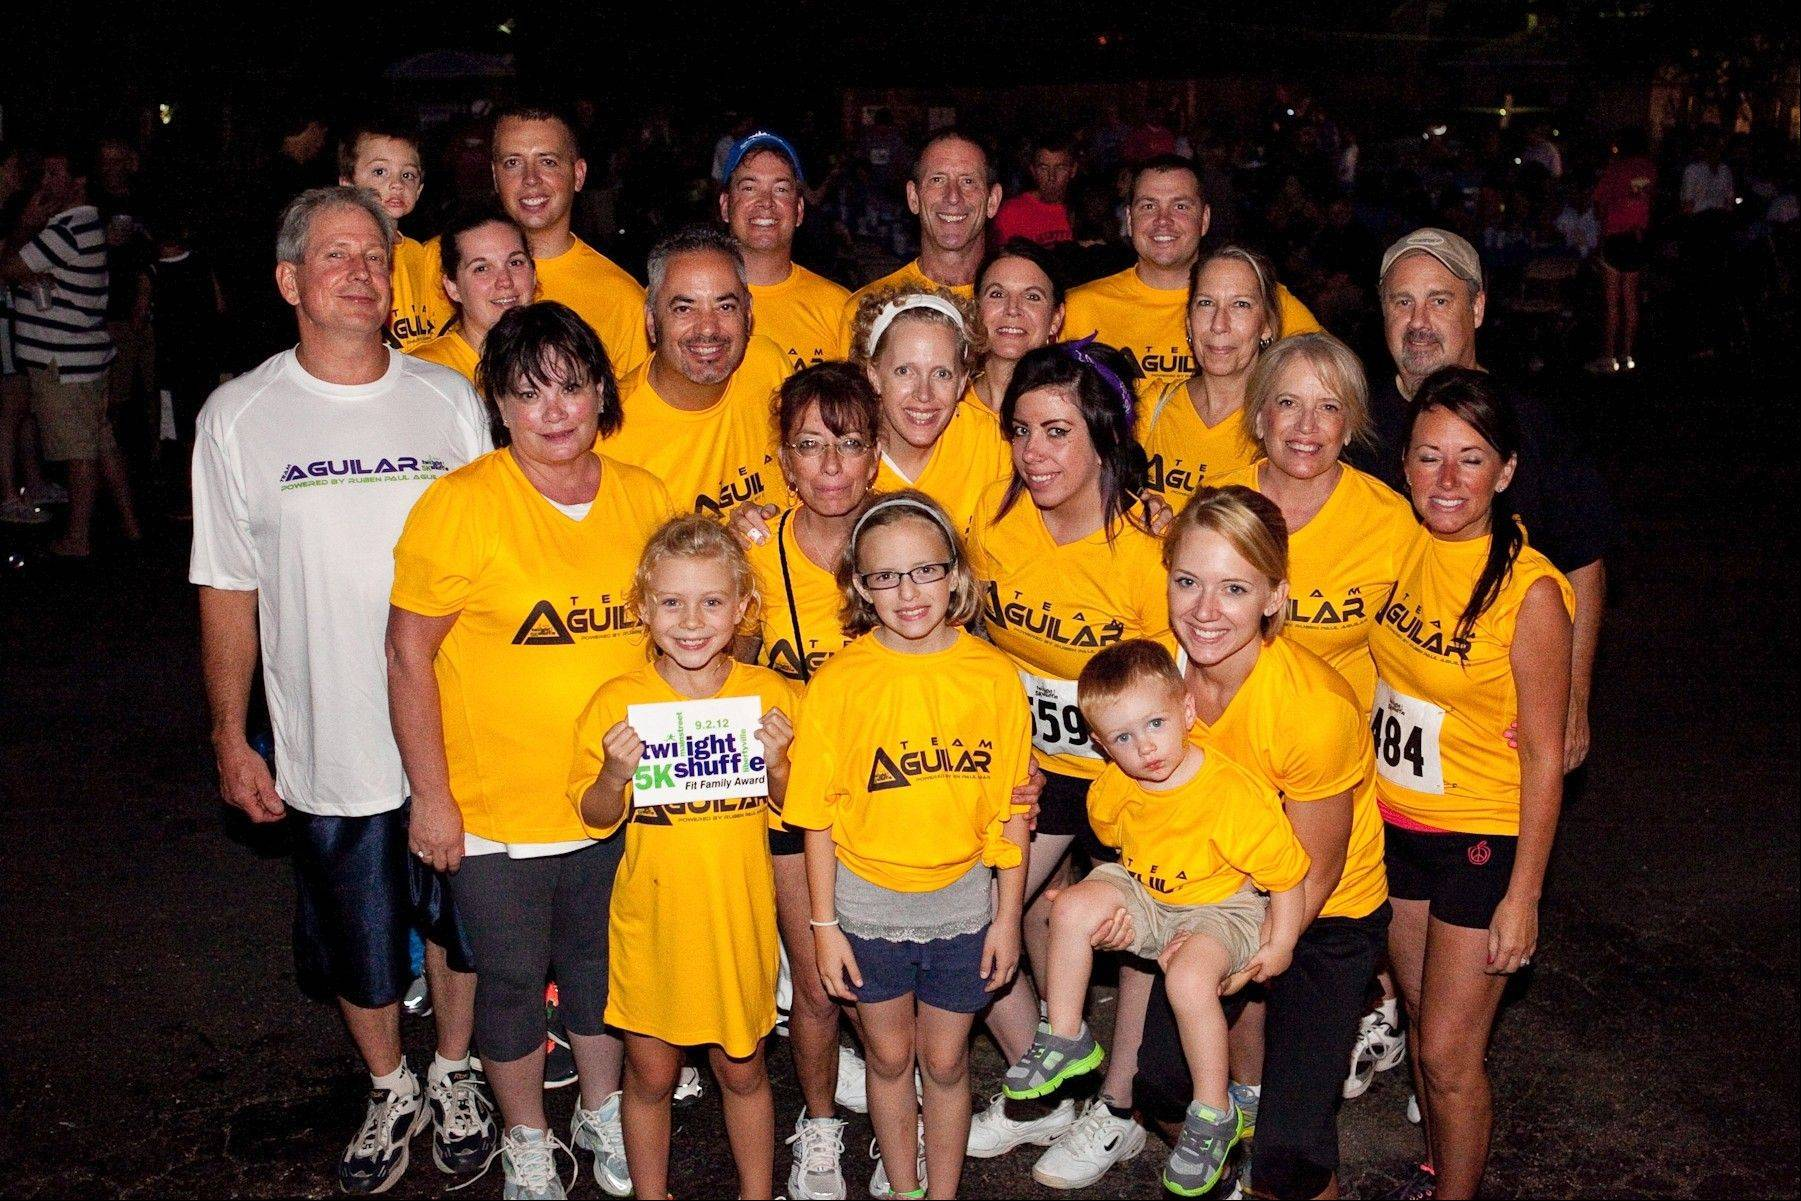 2012 Fit Family Award winners the Aguilar family at last year�s MainStreet Libertyville Twilight Shuffle 5K.